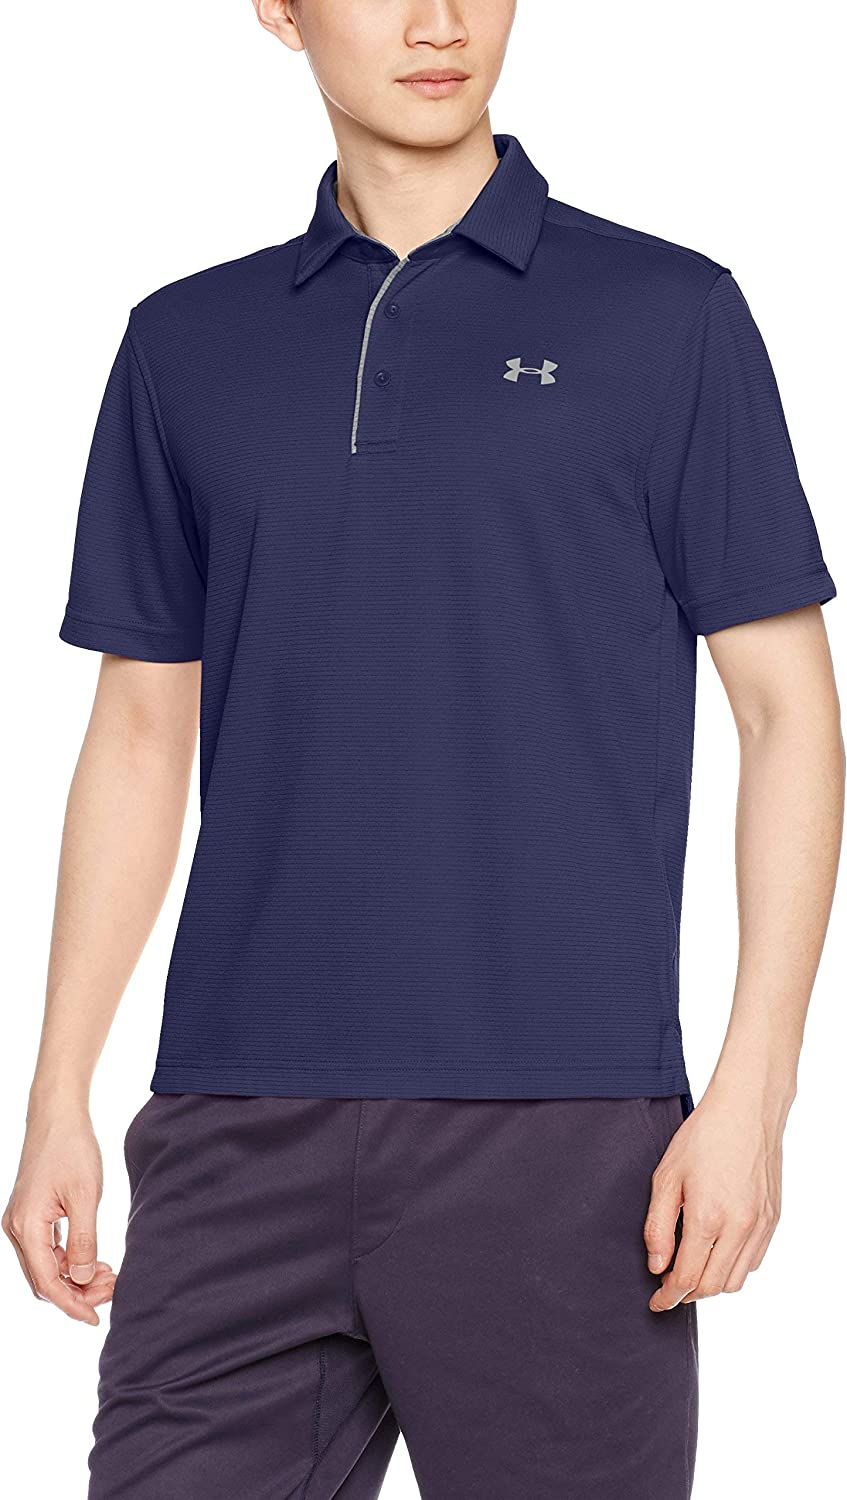 Under Armour Tech Polo, Hombre, Azul (Midnight Navy/Graphite 410), M